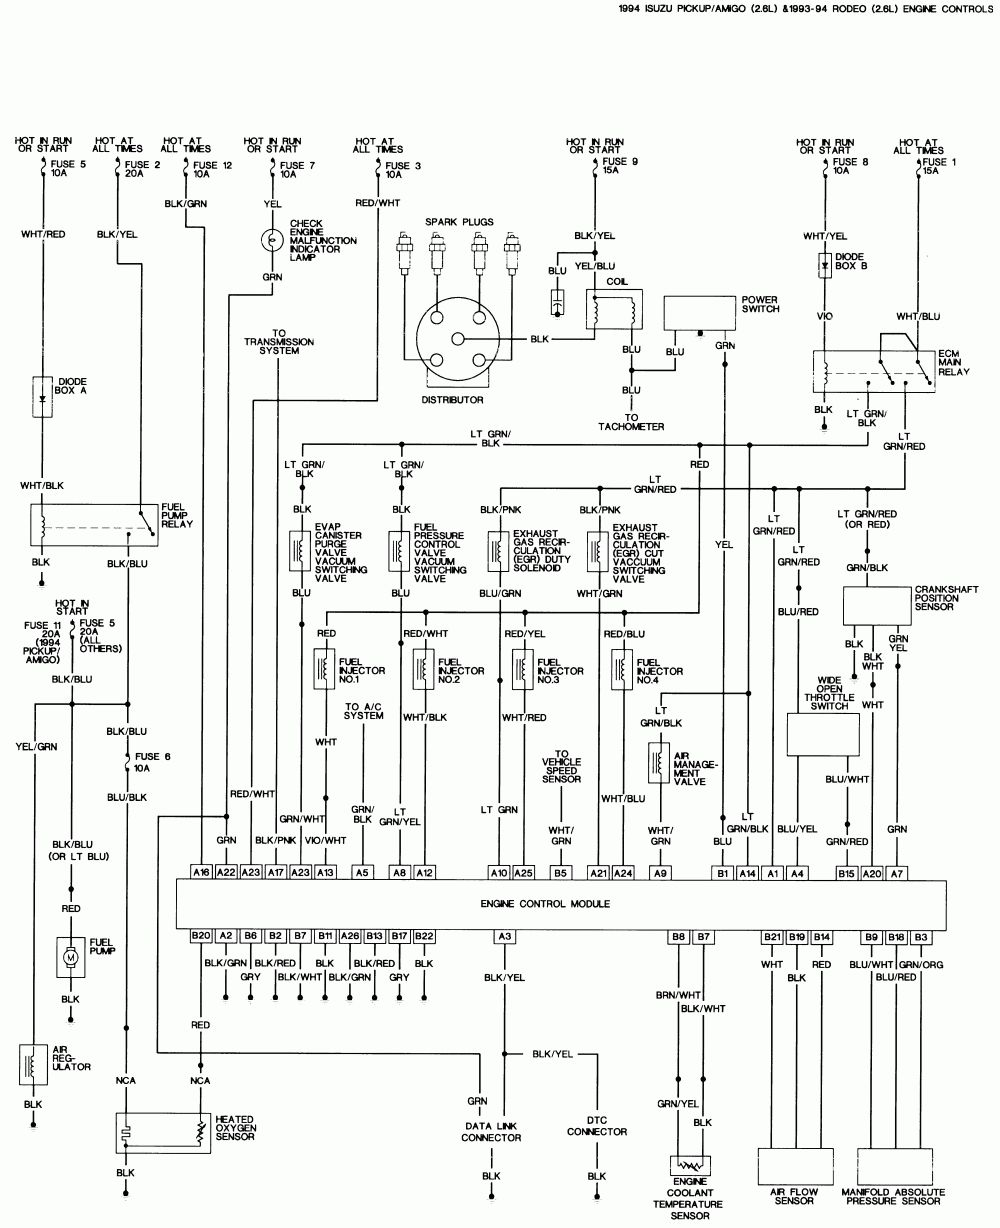 A25 Warn Winch Wiring Diagrams Reinvent Your Diagram 8000 Isuzu Npr Electrical Wiringdiagram Org Rh Pinterest Com 12000